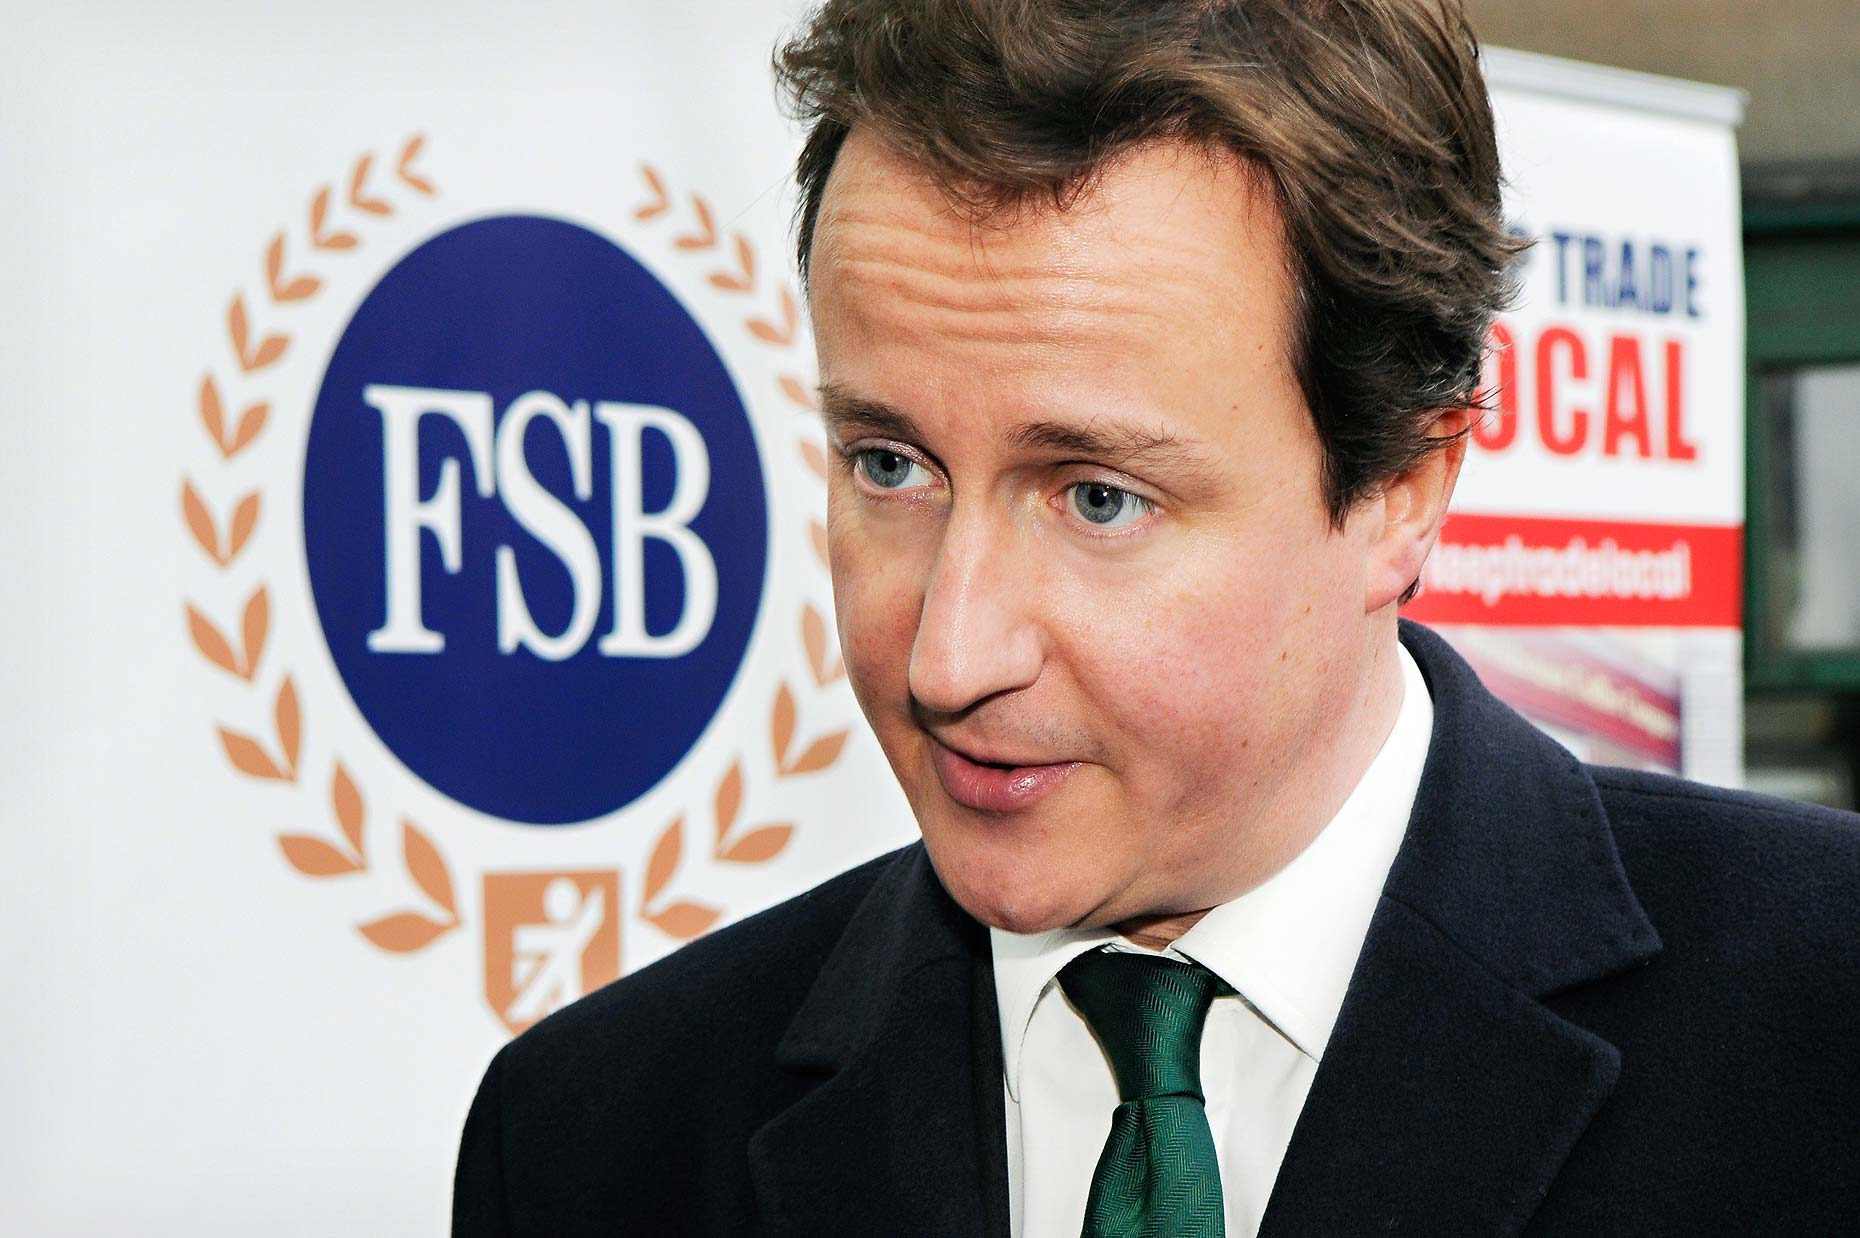 0945 David-Cameron-FSB-Swanage-Dorset-PR-and-Corporate.jpg